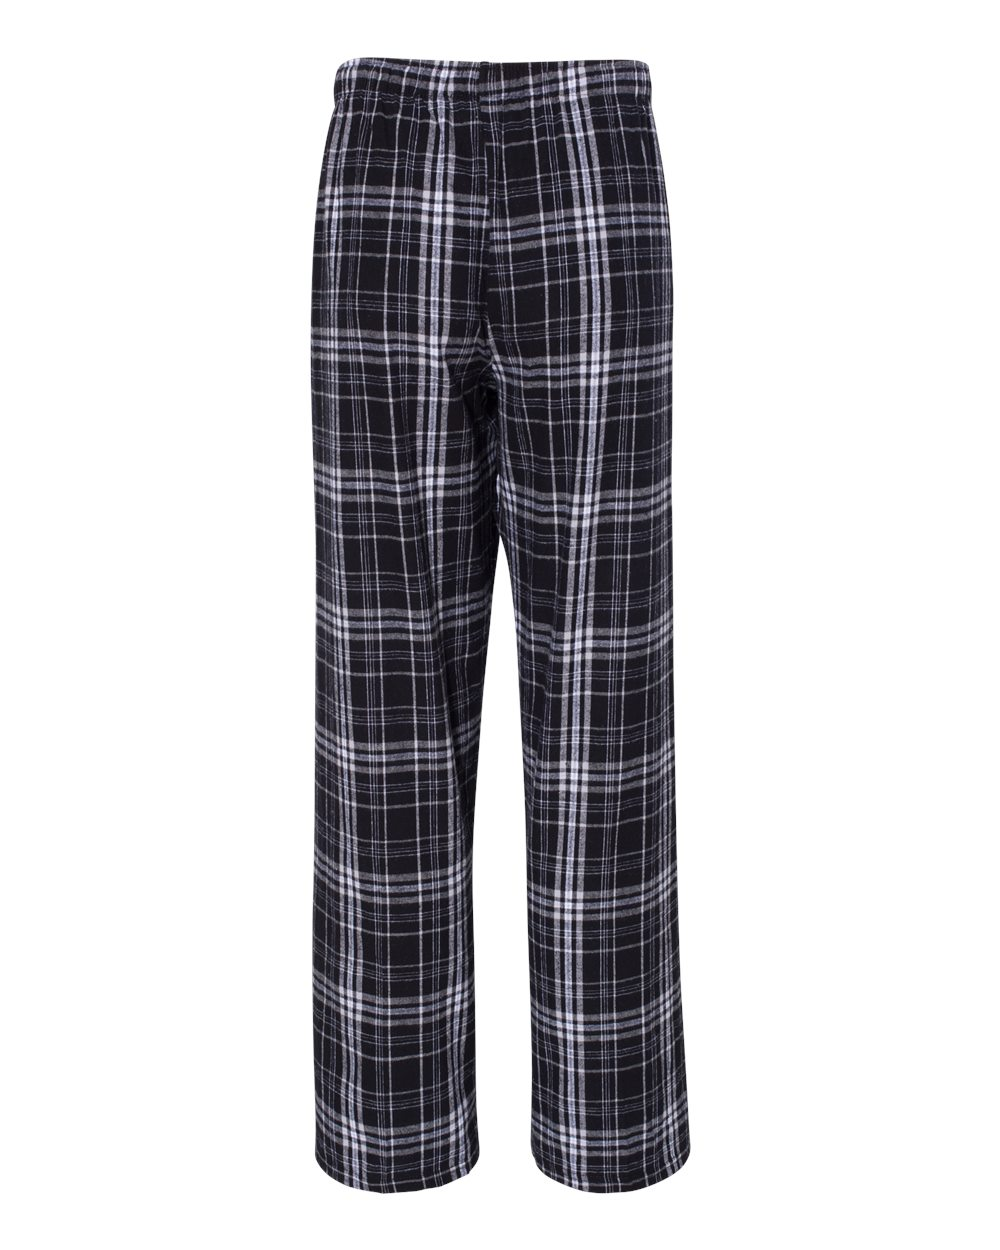 Boxercraft-Unisex-Flannel-Pants-With-Pockets-Pajama-Pants-F20-up-to-2XL thumbnail 7